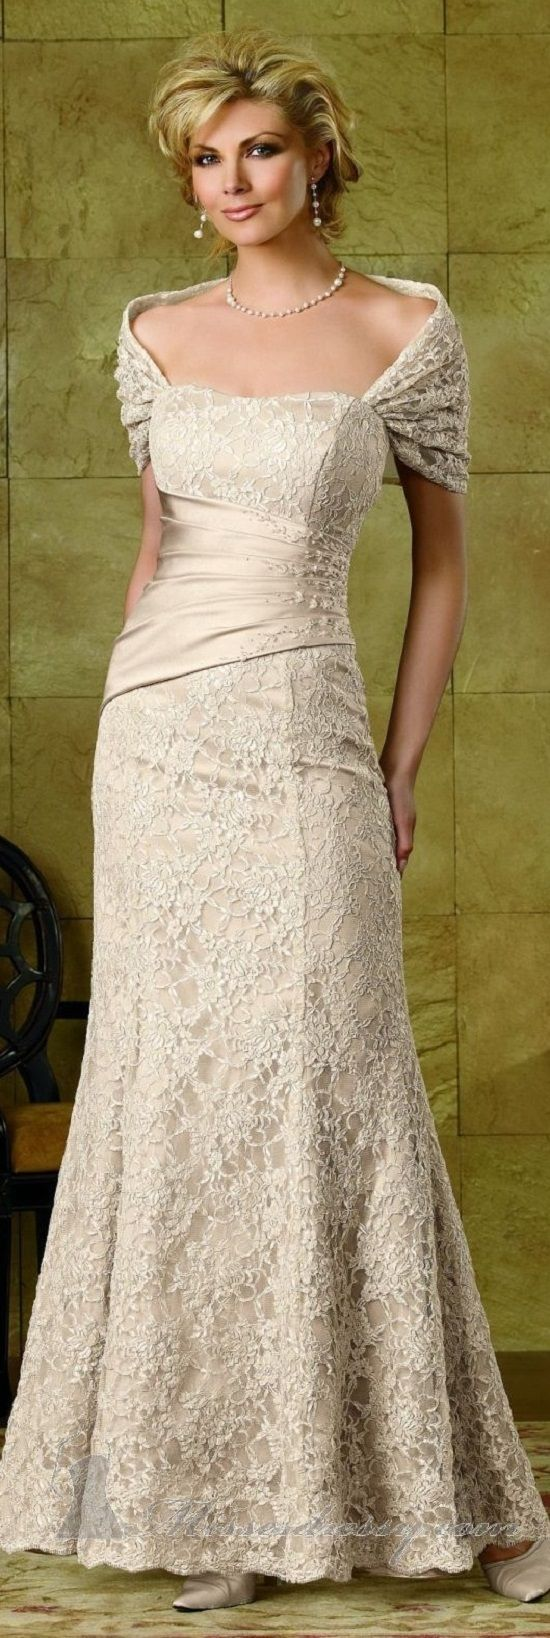 Best 25 older bride ideas on pinterest wedding dress for Wedding dresses for 60 year olds